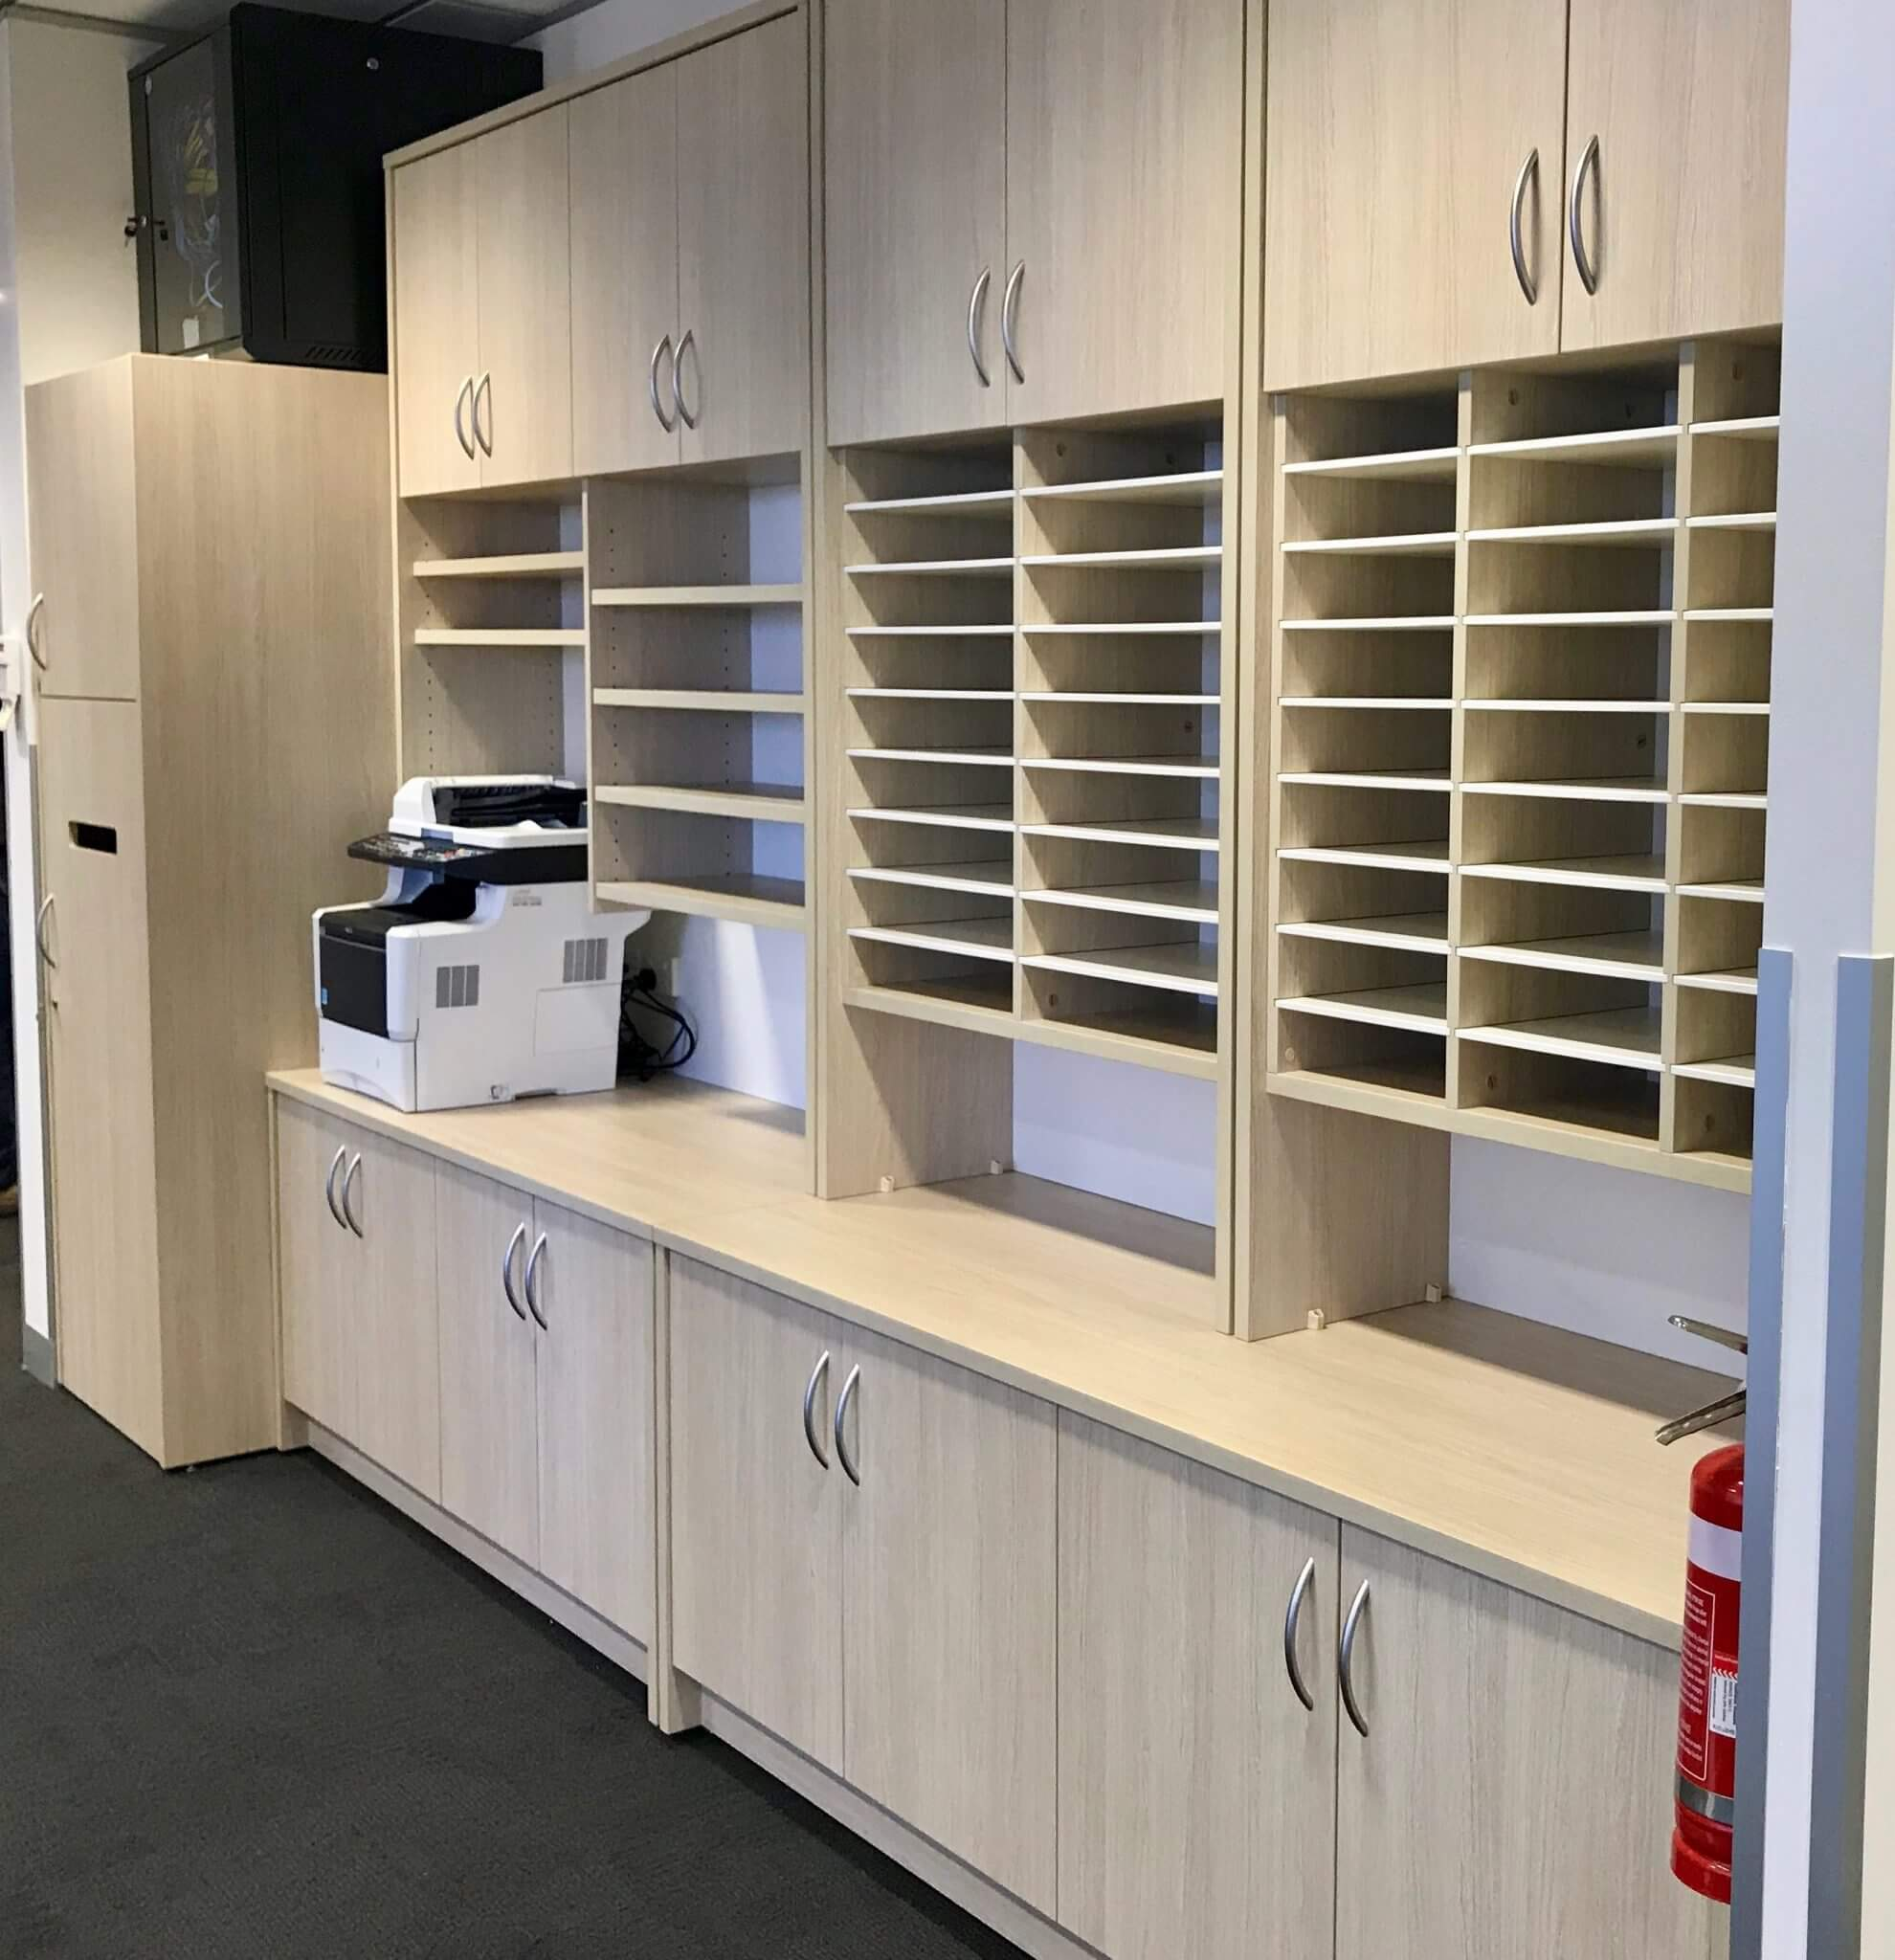 medical fitout with credenza and hutches in reception area for patient records